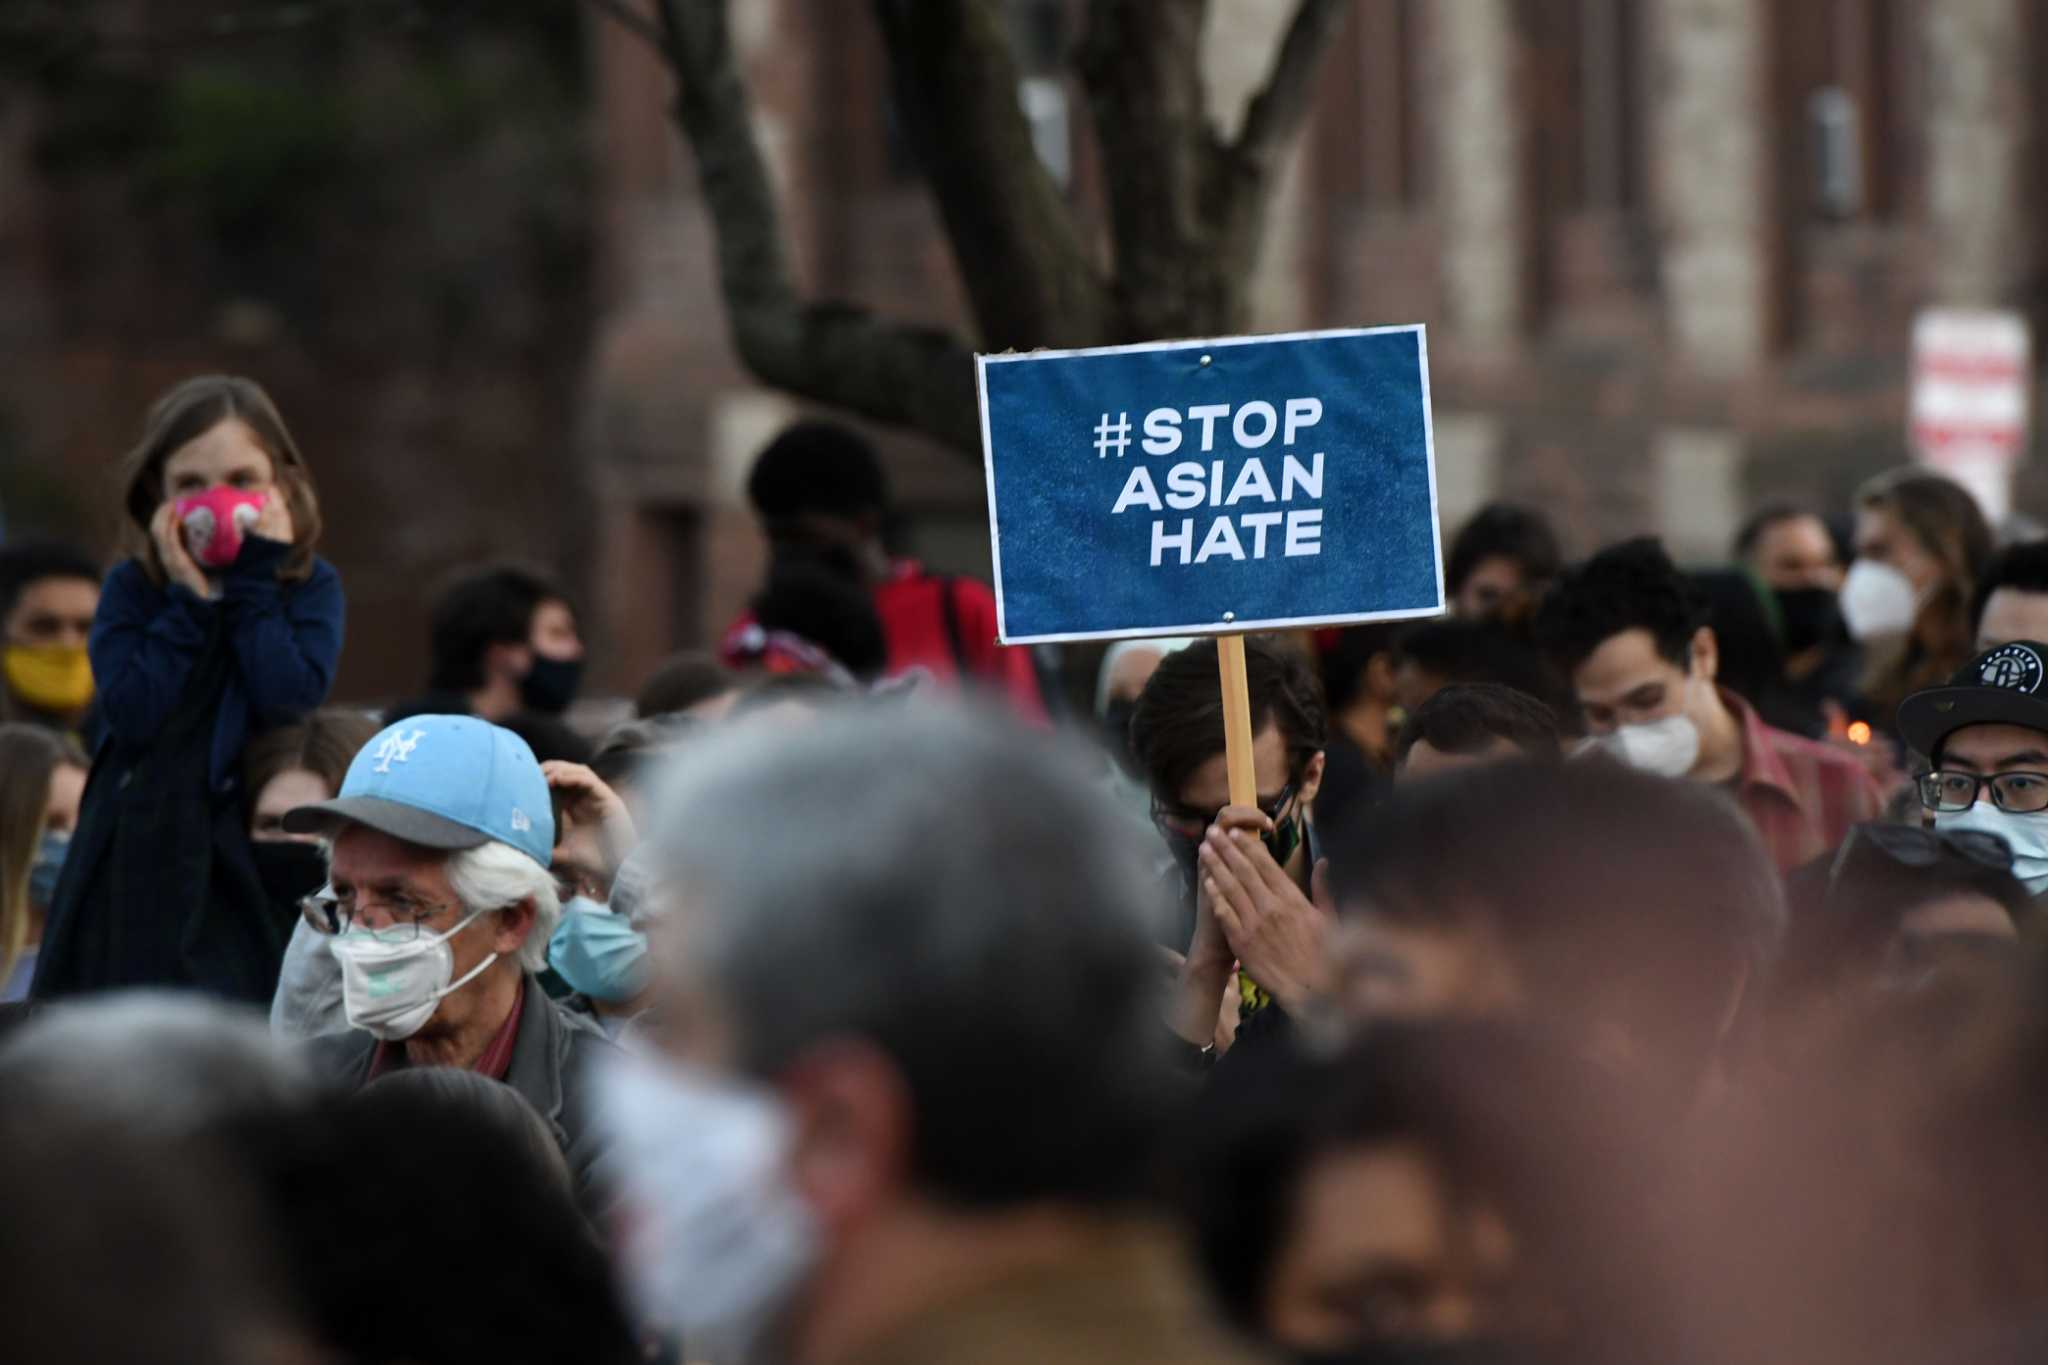 www.timesunion.com: Albany rally supports Asian Americans amid rising hate crimes